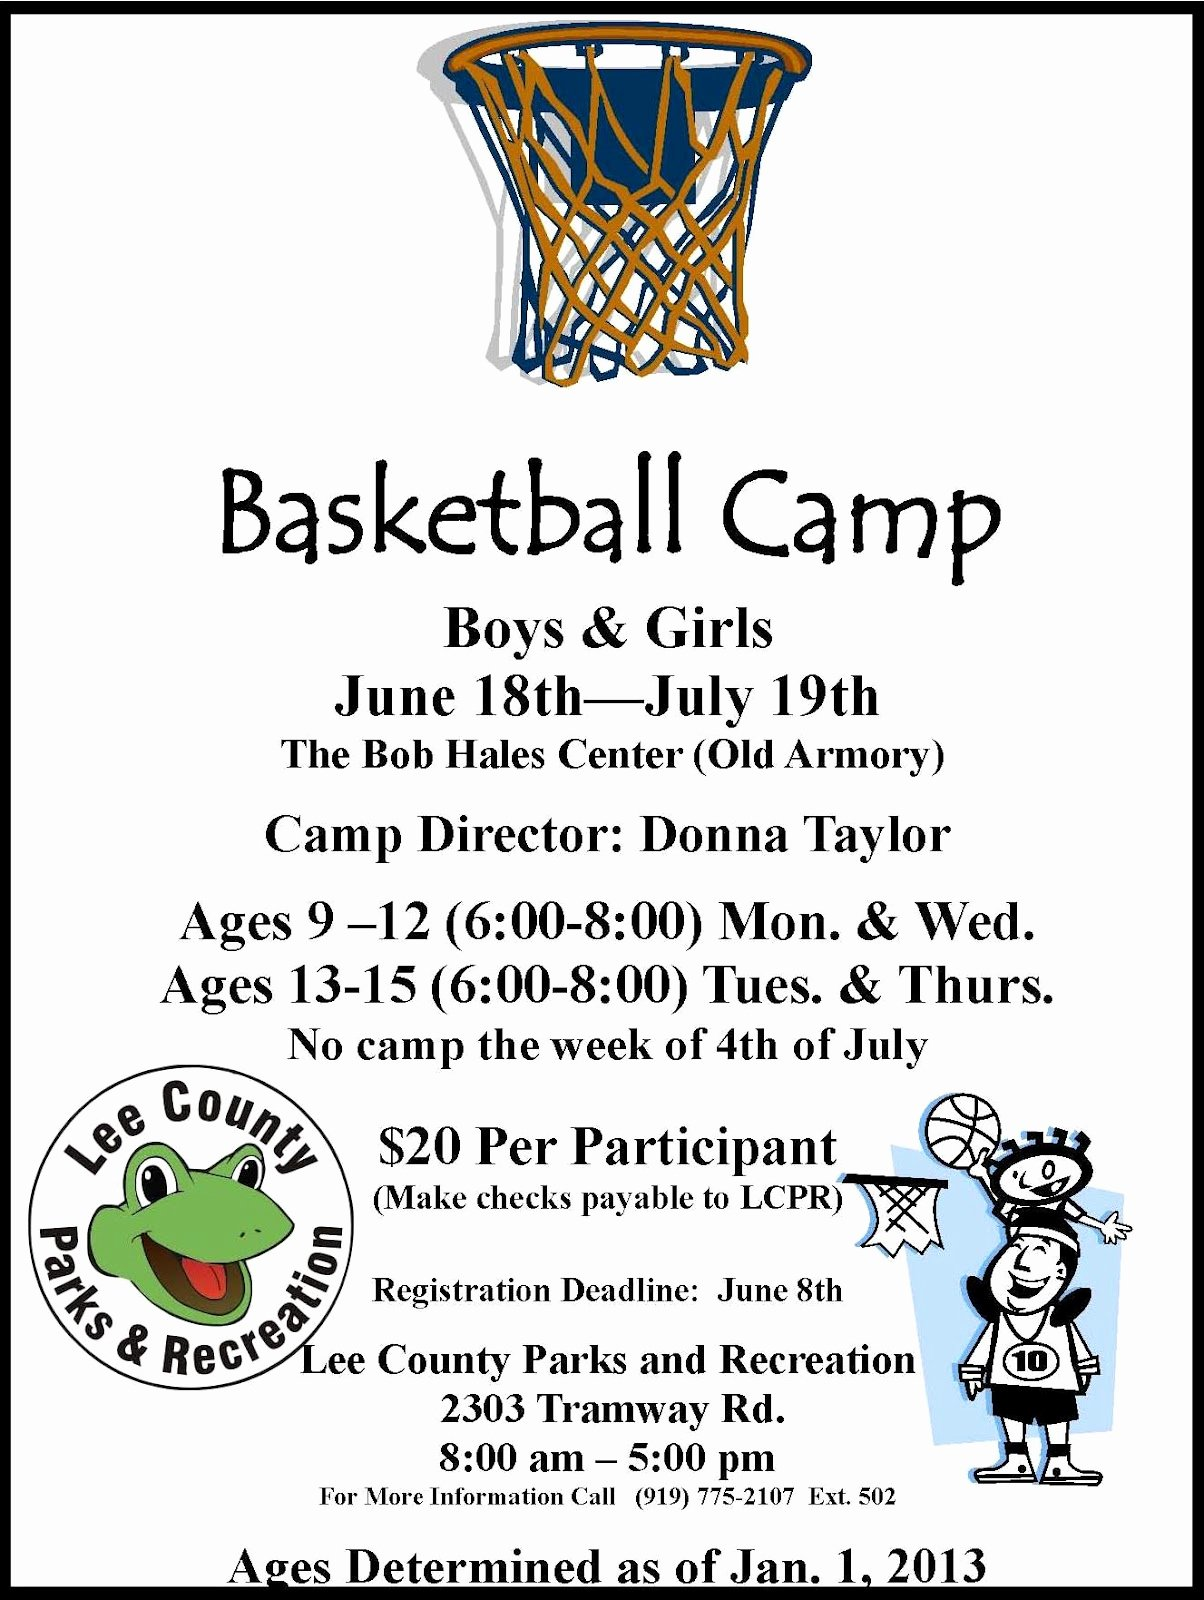 Basketball Camp Flyer Template Inspirational Lee County Government Basketball Camp